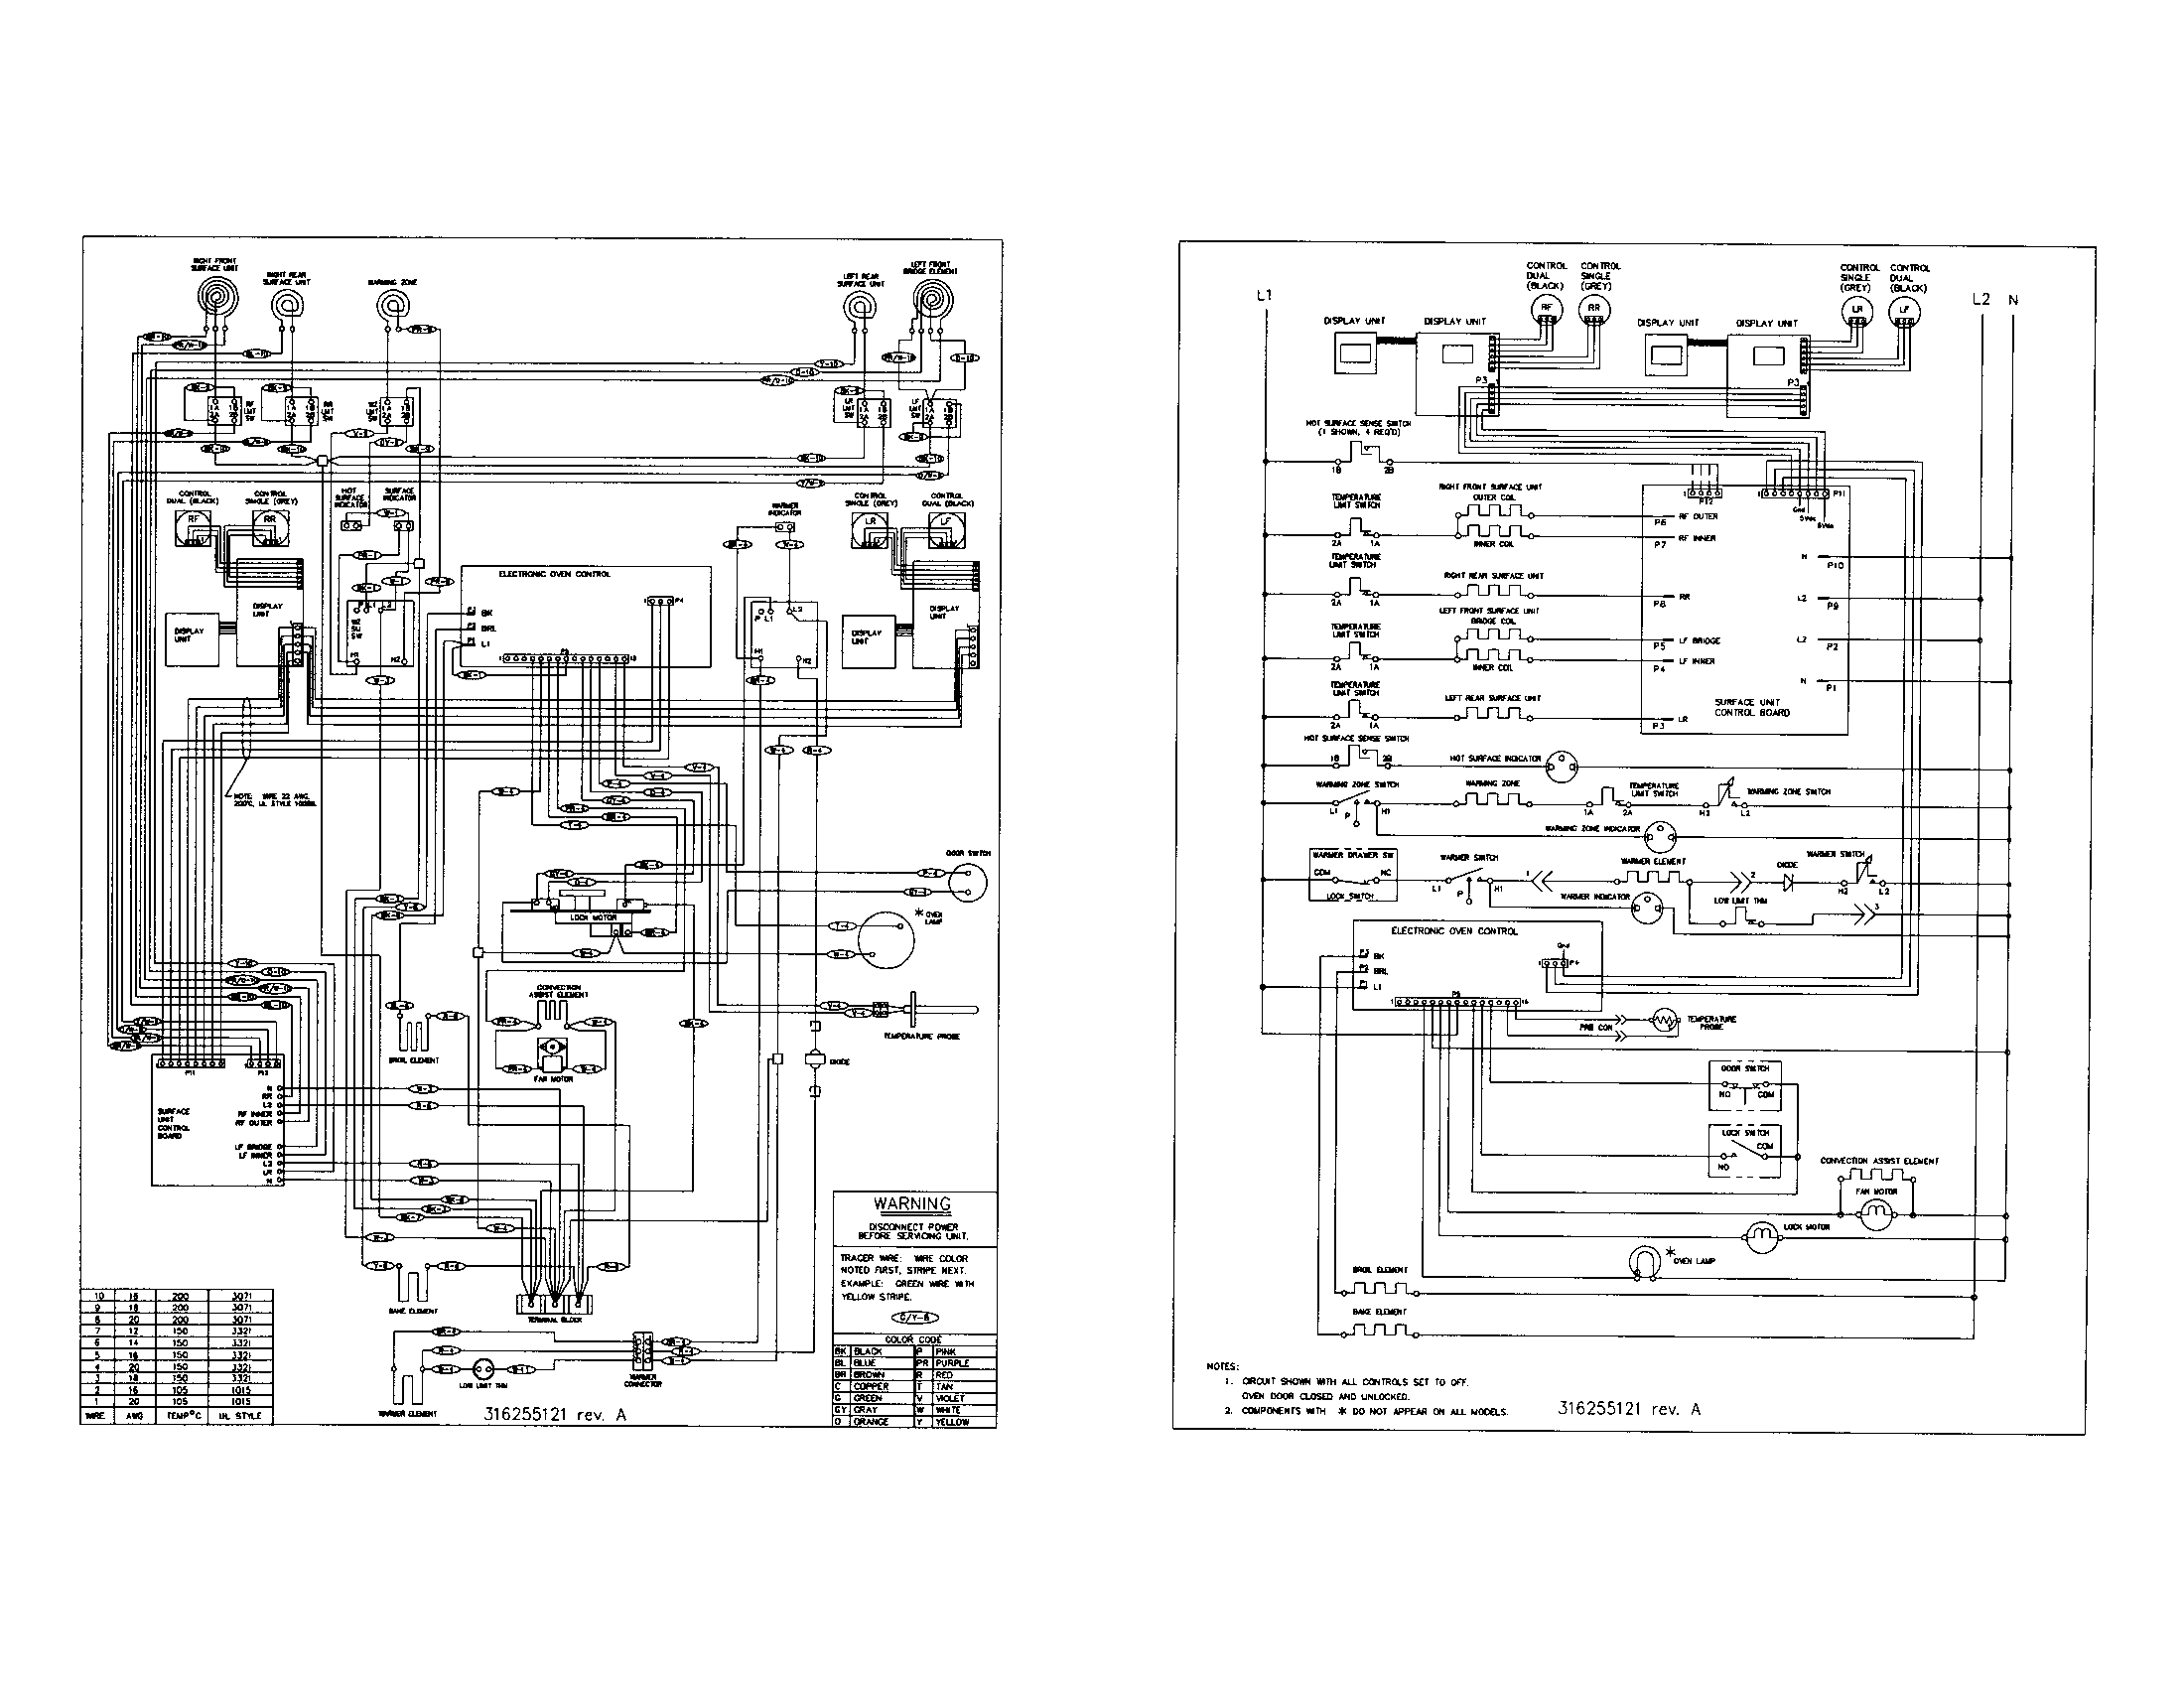 wiring diagram parts wiring diagram for kitchenaid dishwasher readingrat net hobart lxih wiring diagram at n-0.co